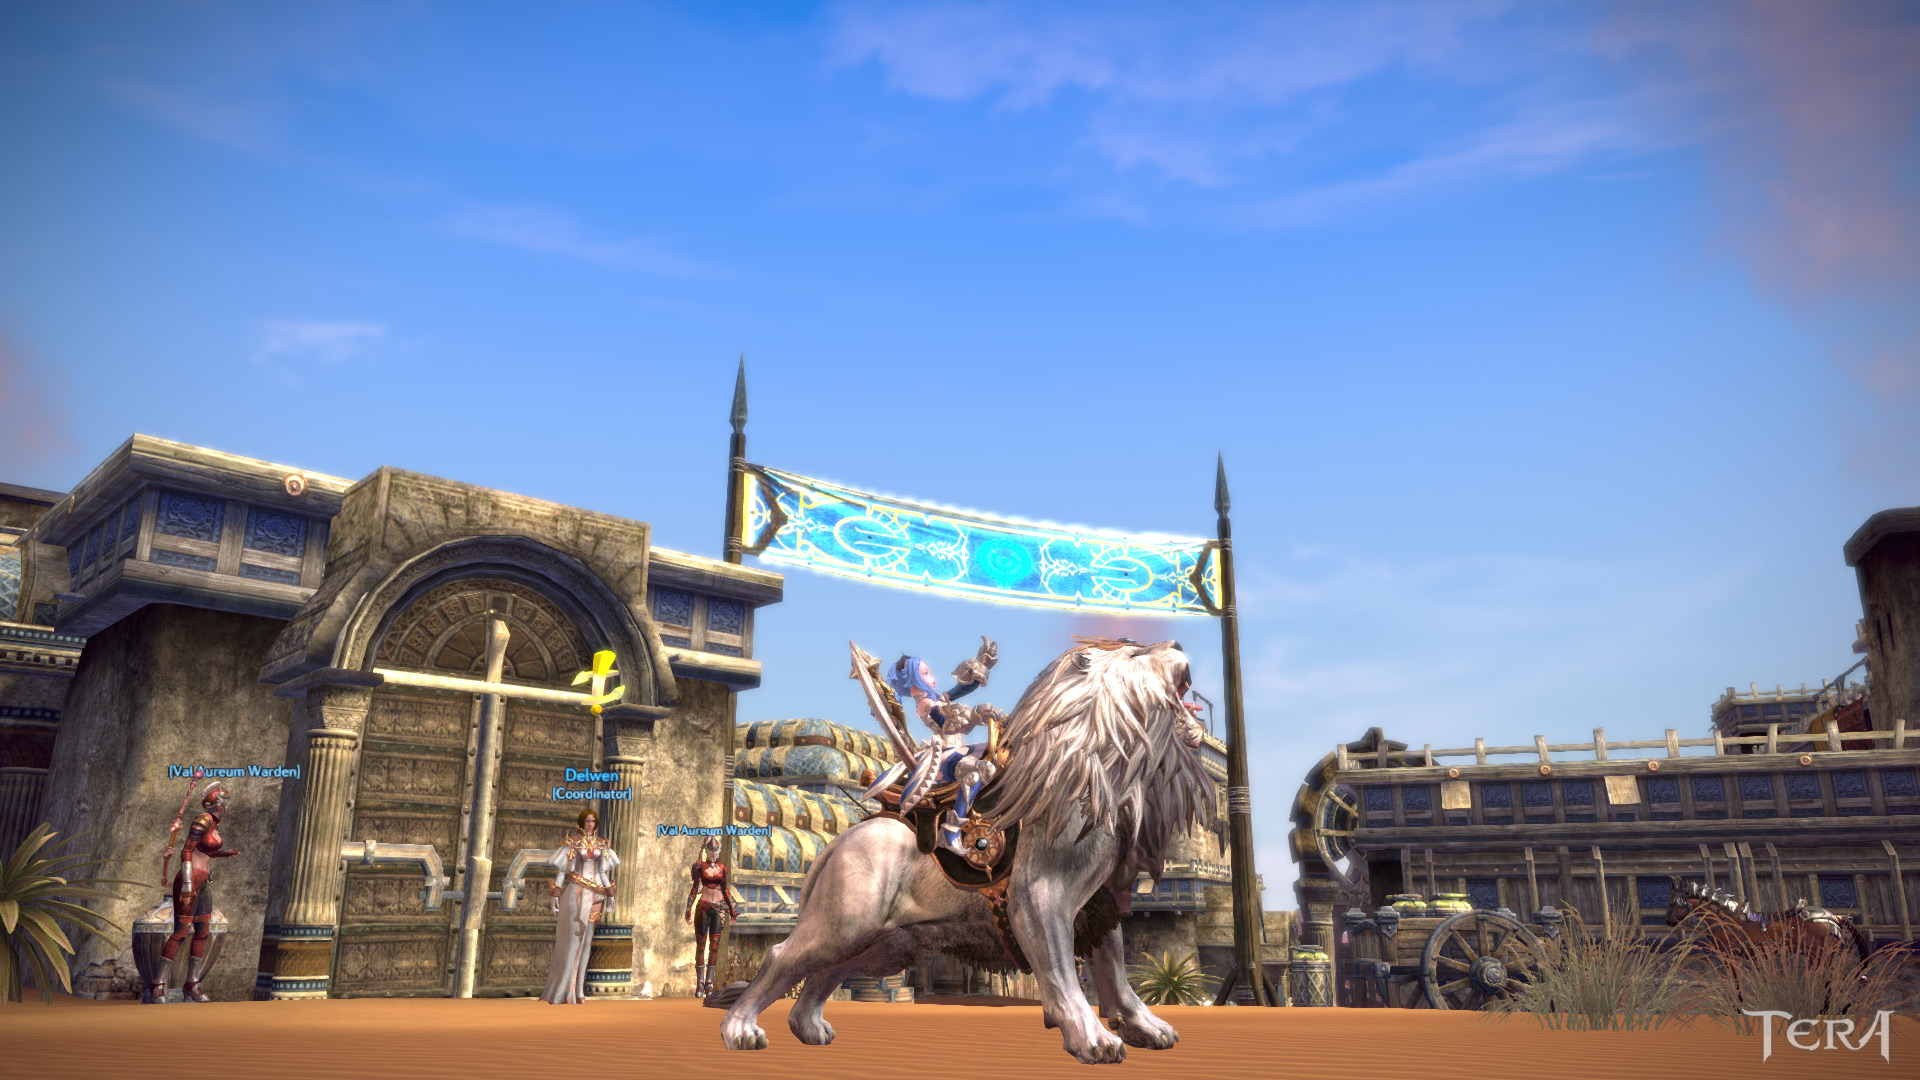 xiani games opening gameplay trailer experience preview online media removed heres tera